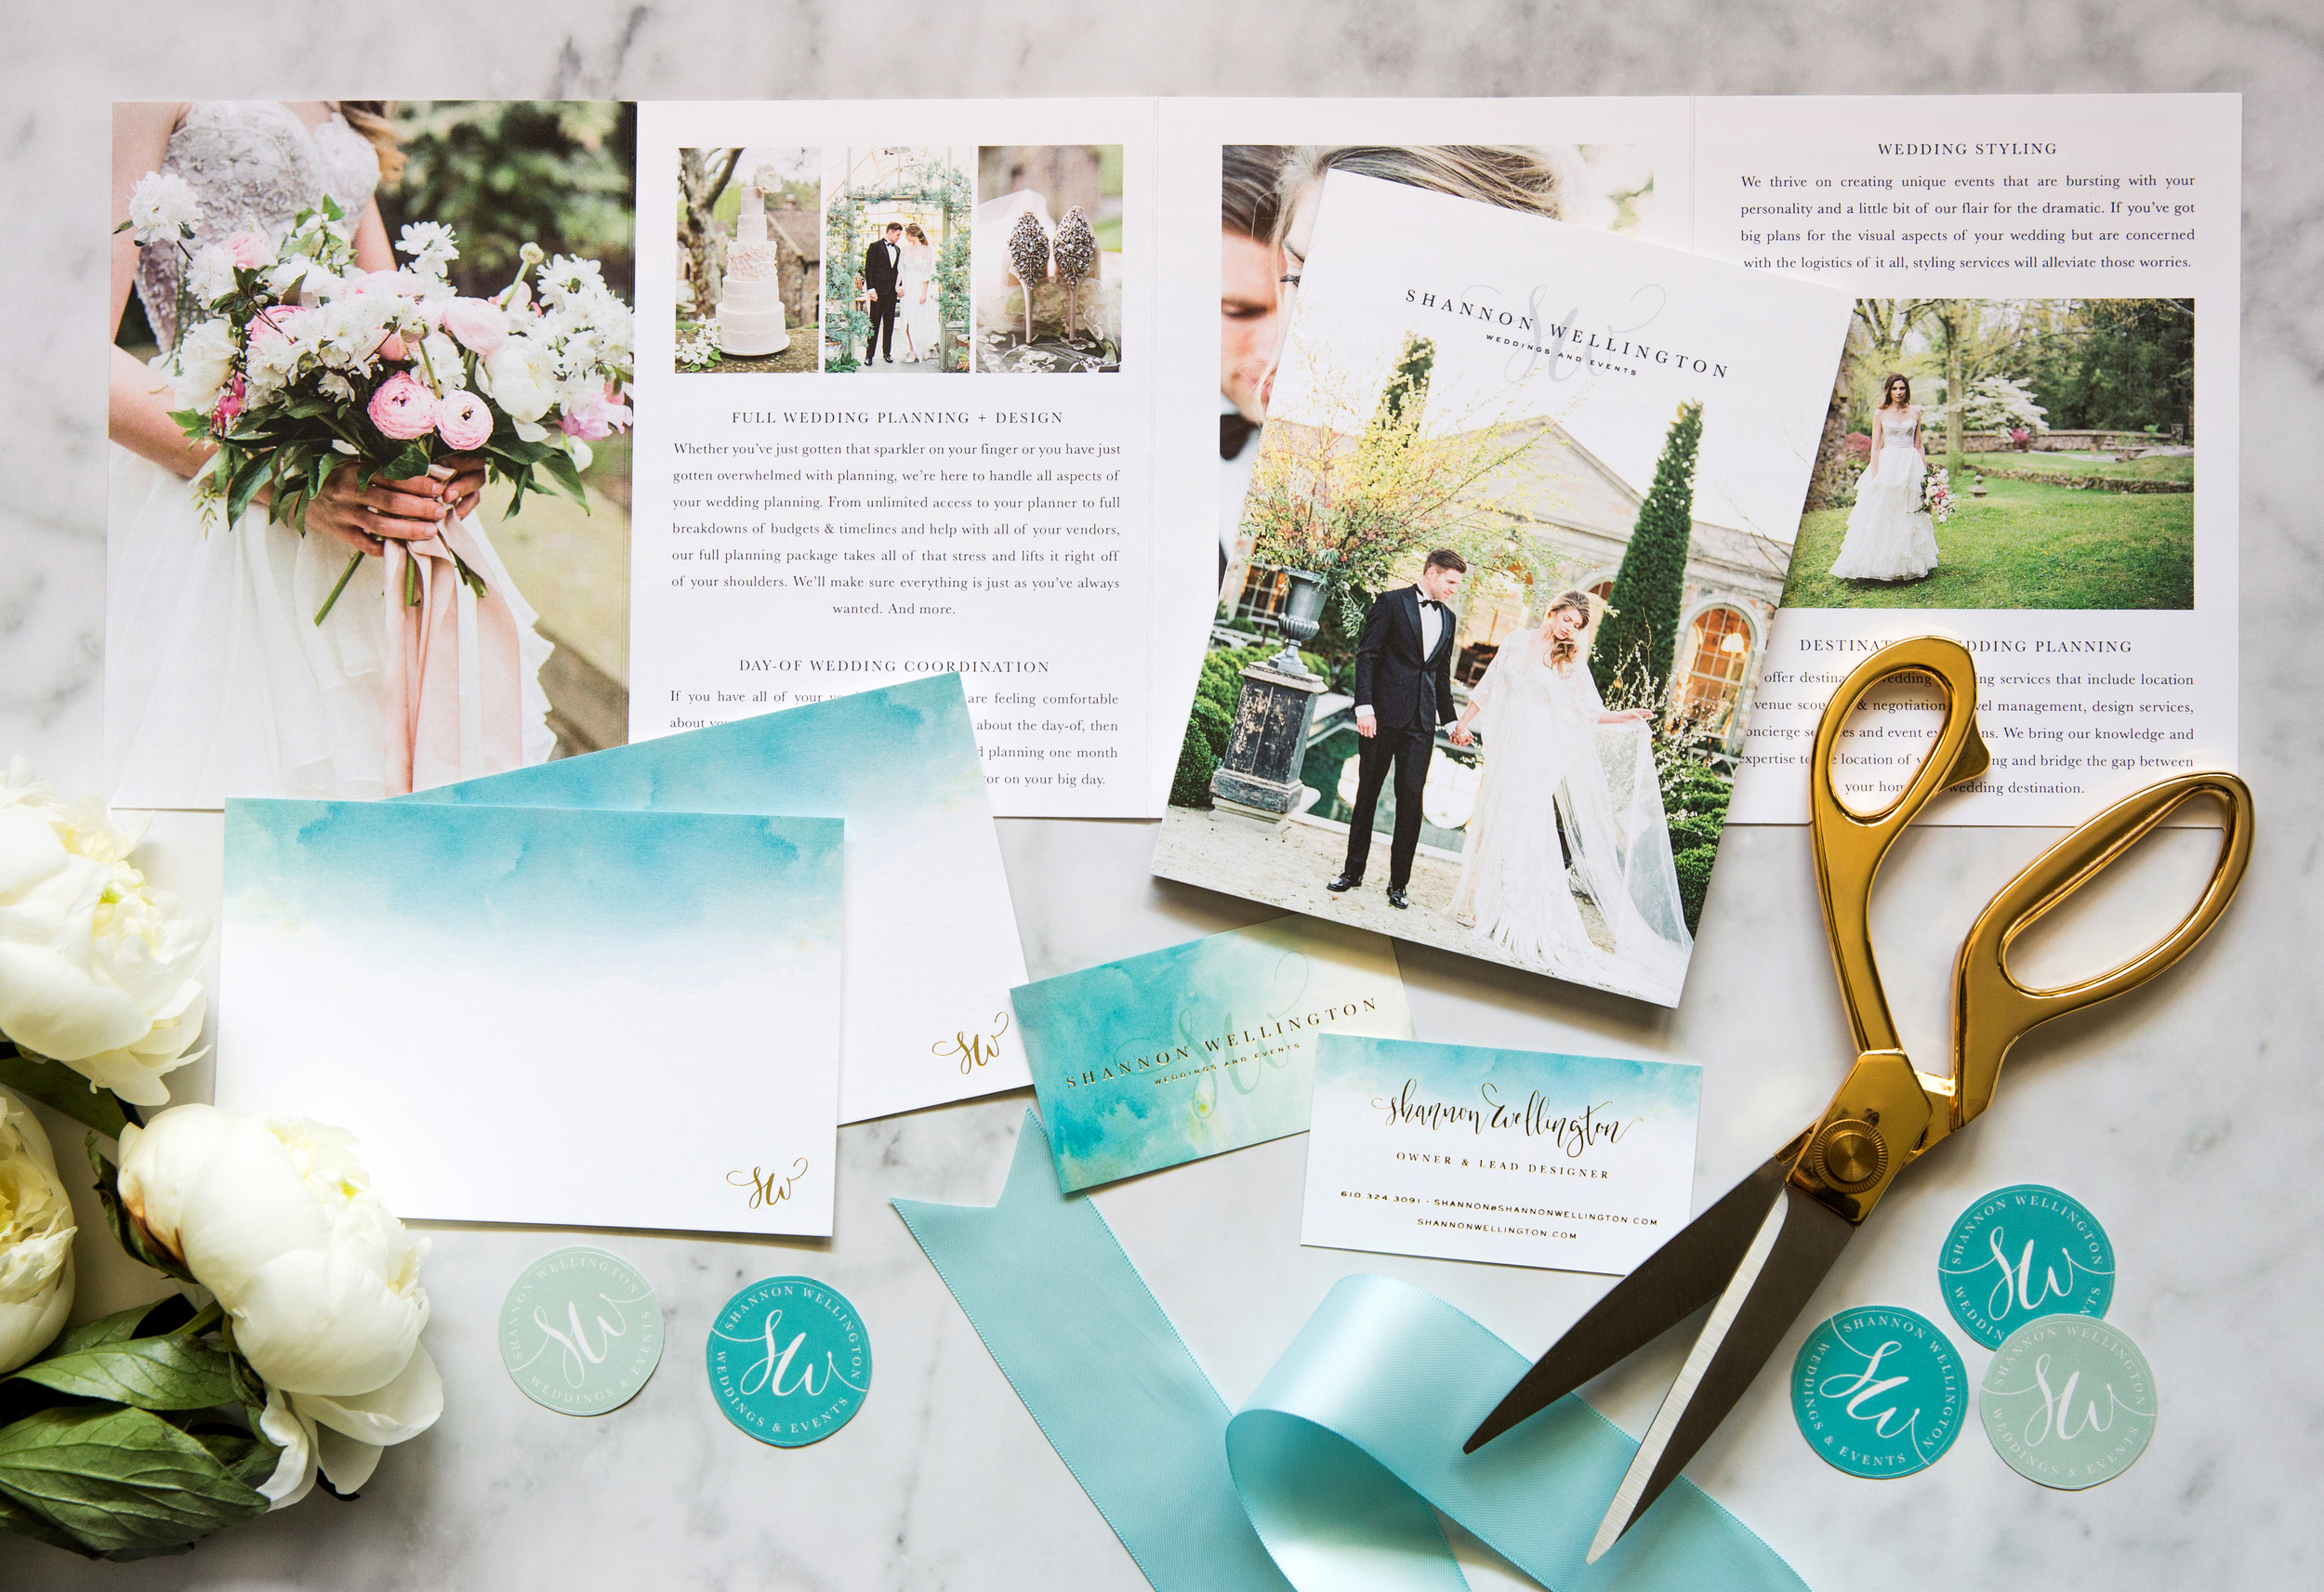 02_Shannon-Wellington-Weddings-Gold-Foil-Watercolor-Brand-Identity-Stationery-Collateral.jpg